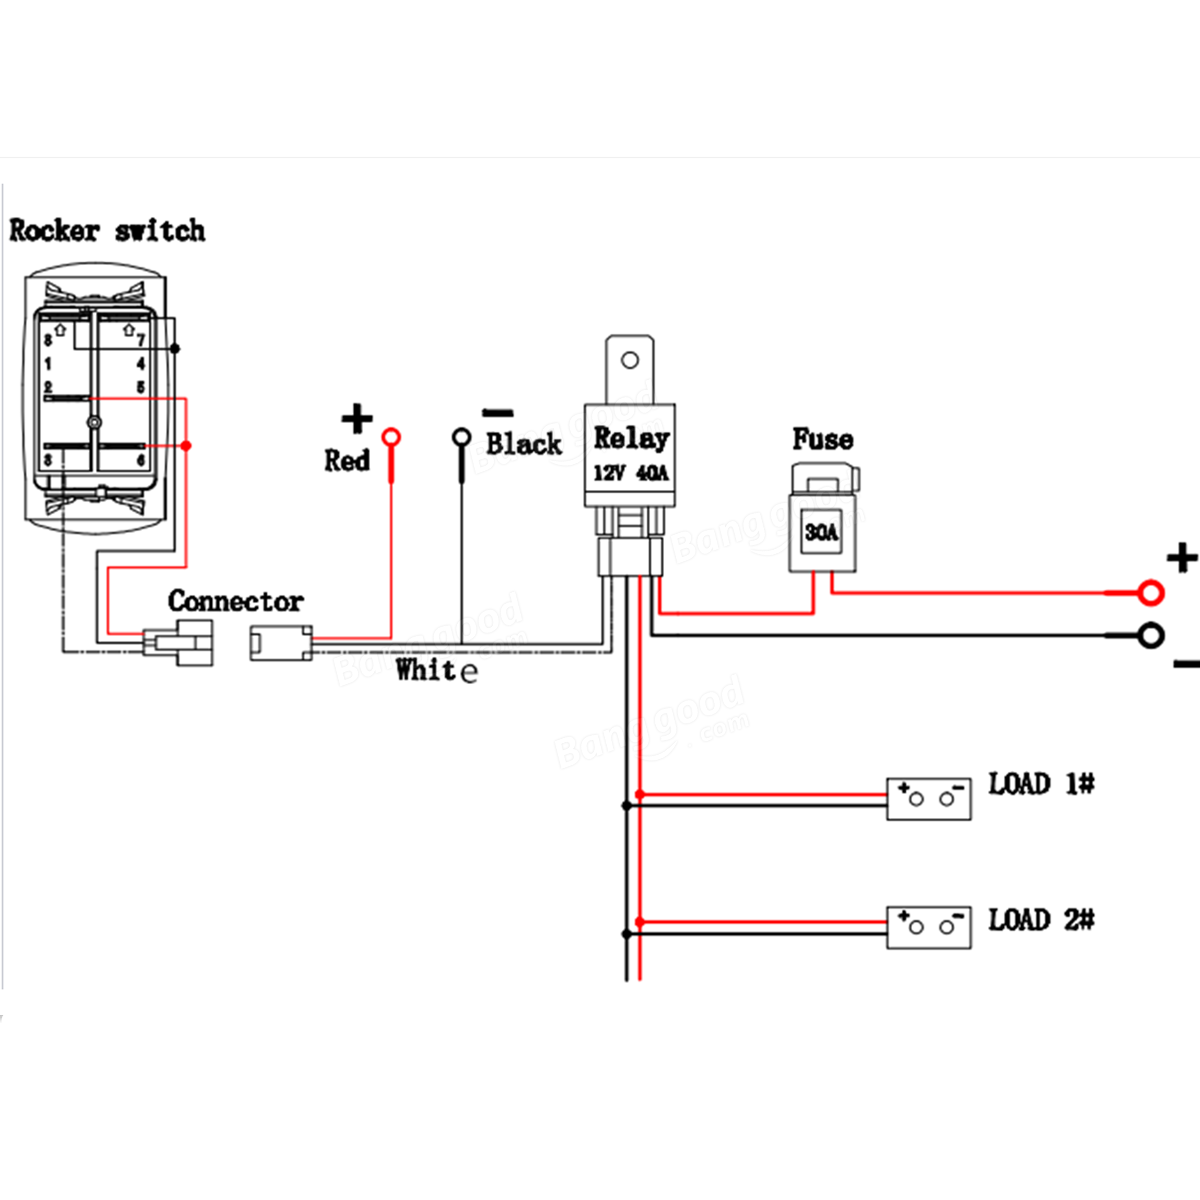 9d6bacef 8f68 448c b477 28191a6abe22 12 v 40a wiring harness 1990 toyota pickup wiring harness \u2022 wiring nilight led wiring diagram at mifinder.co